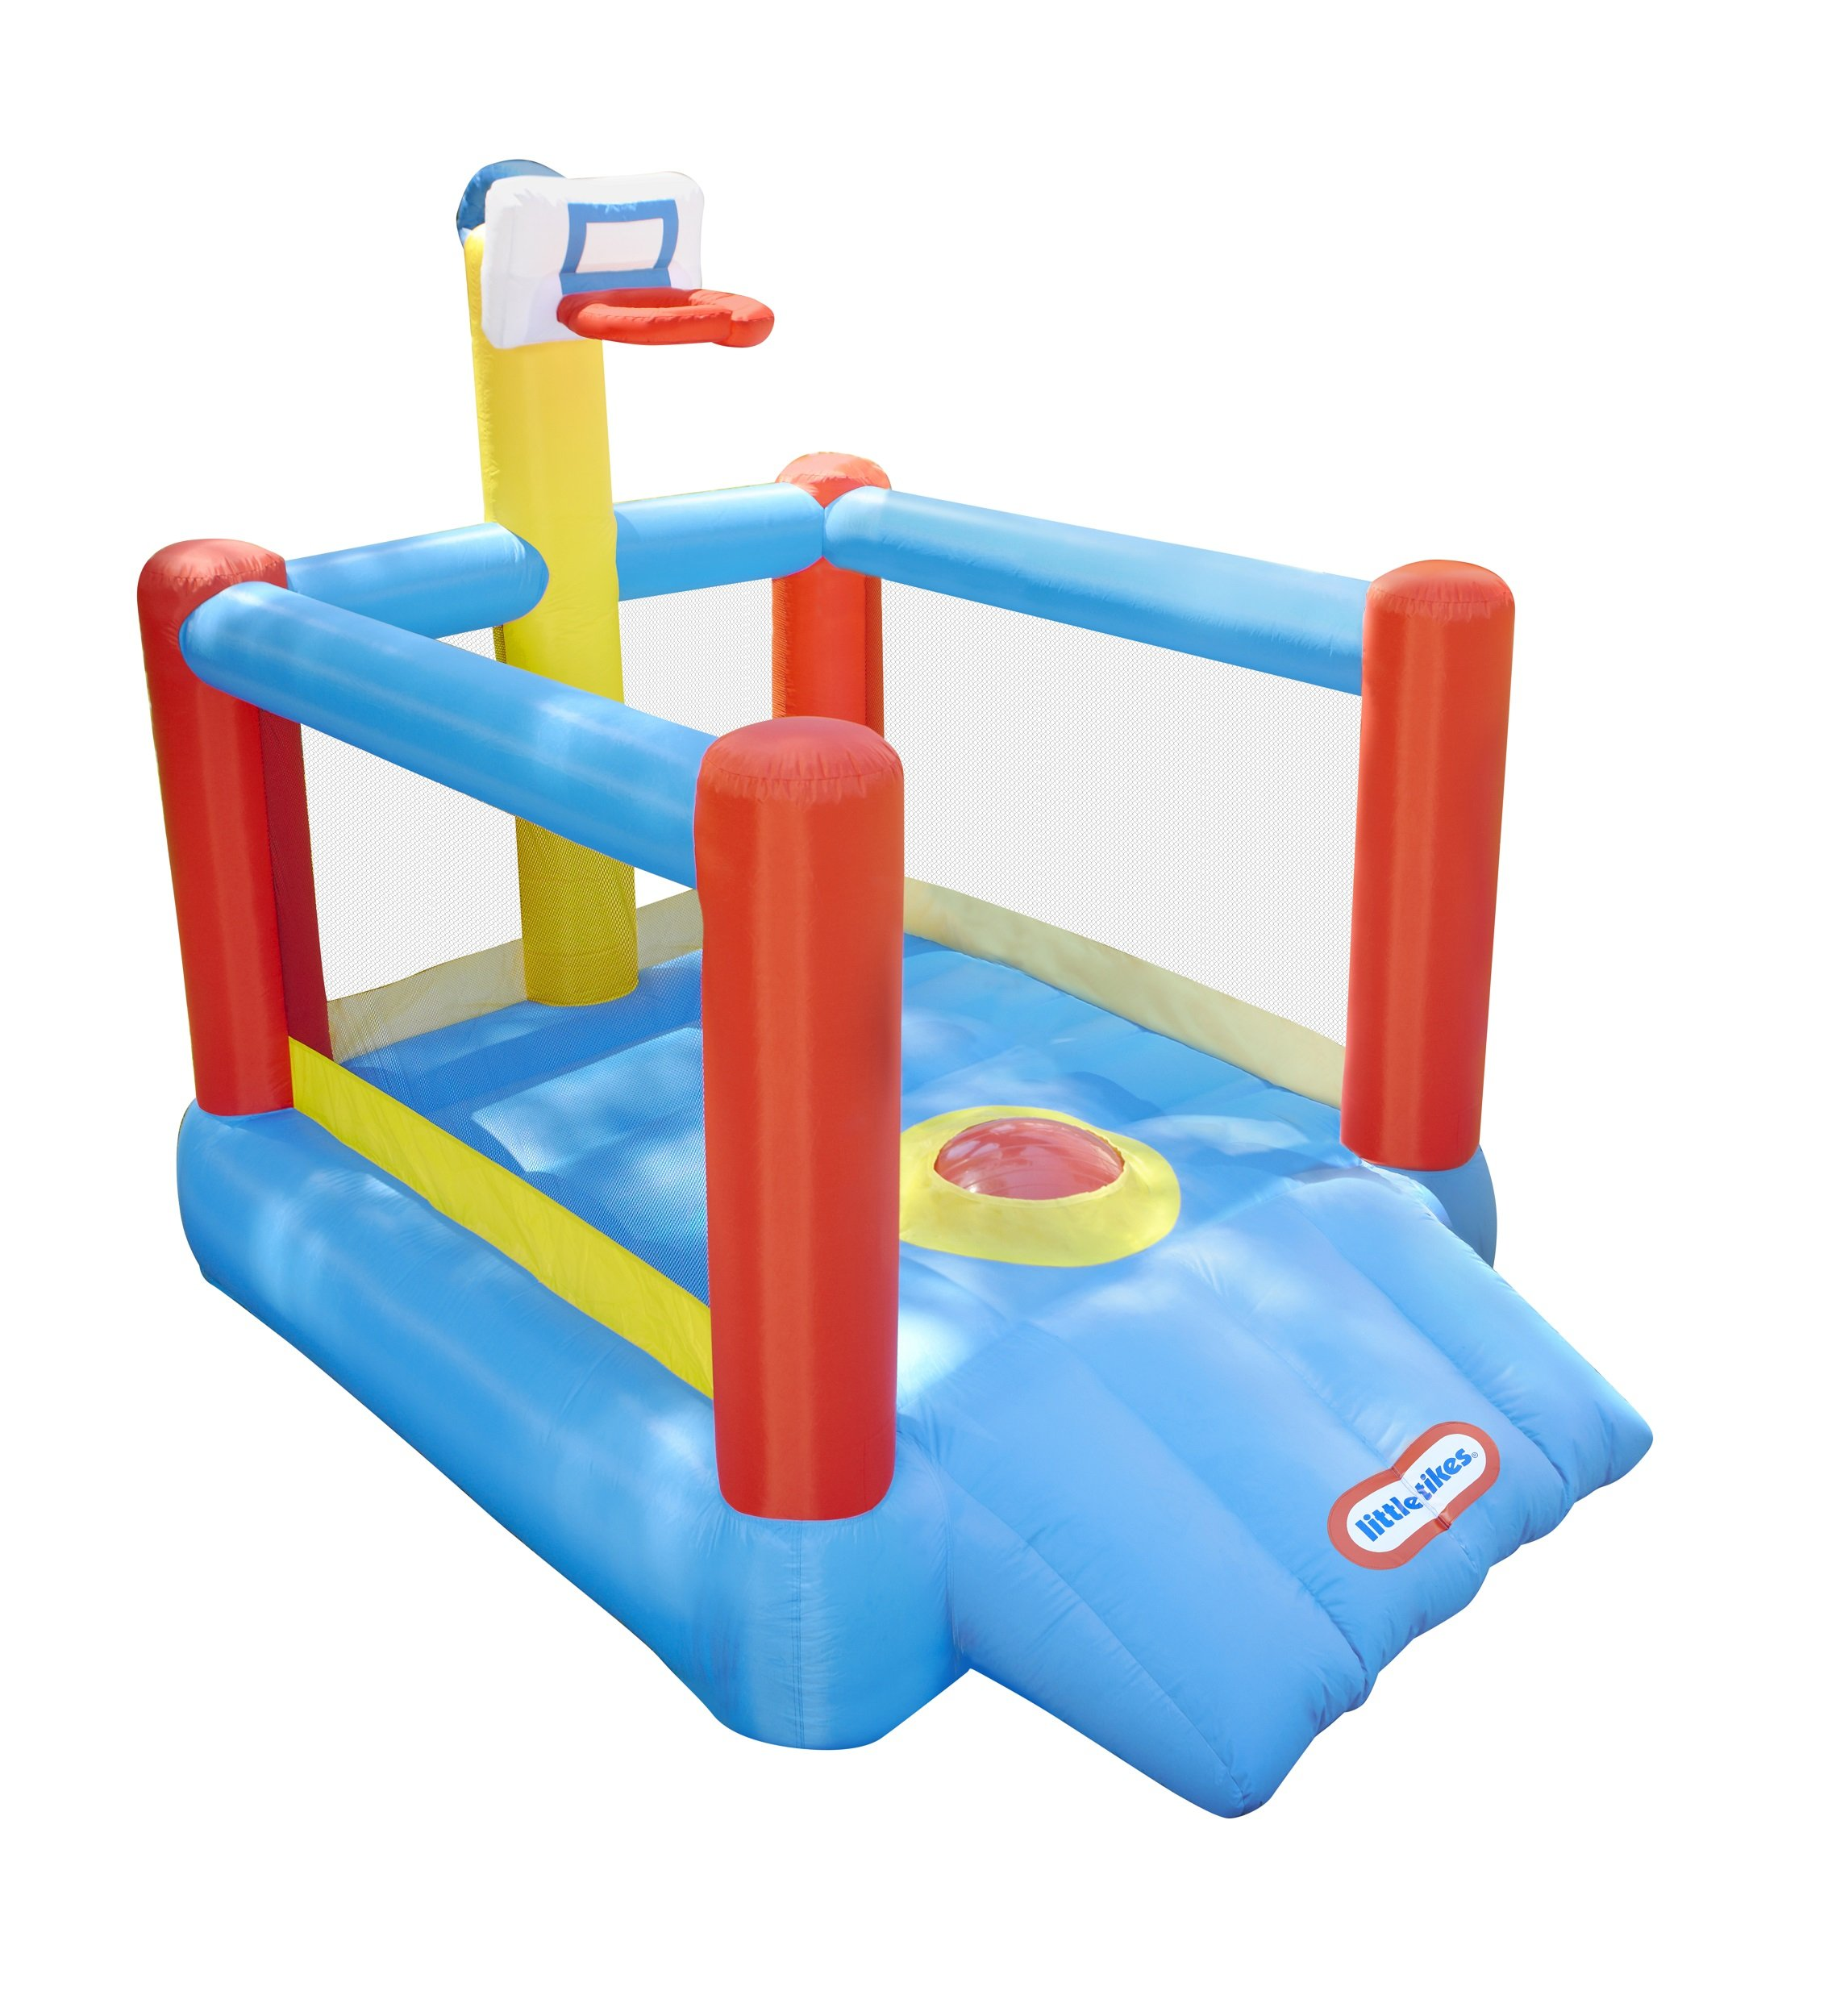 Little Tikes Super-Slam 'n Dunk Childs Toy